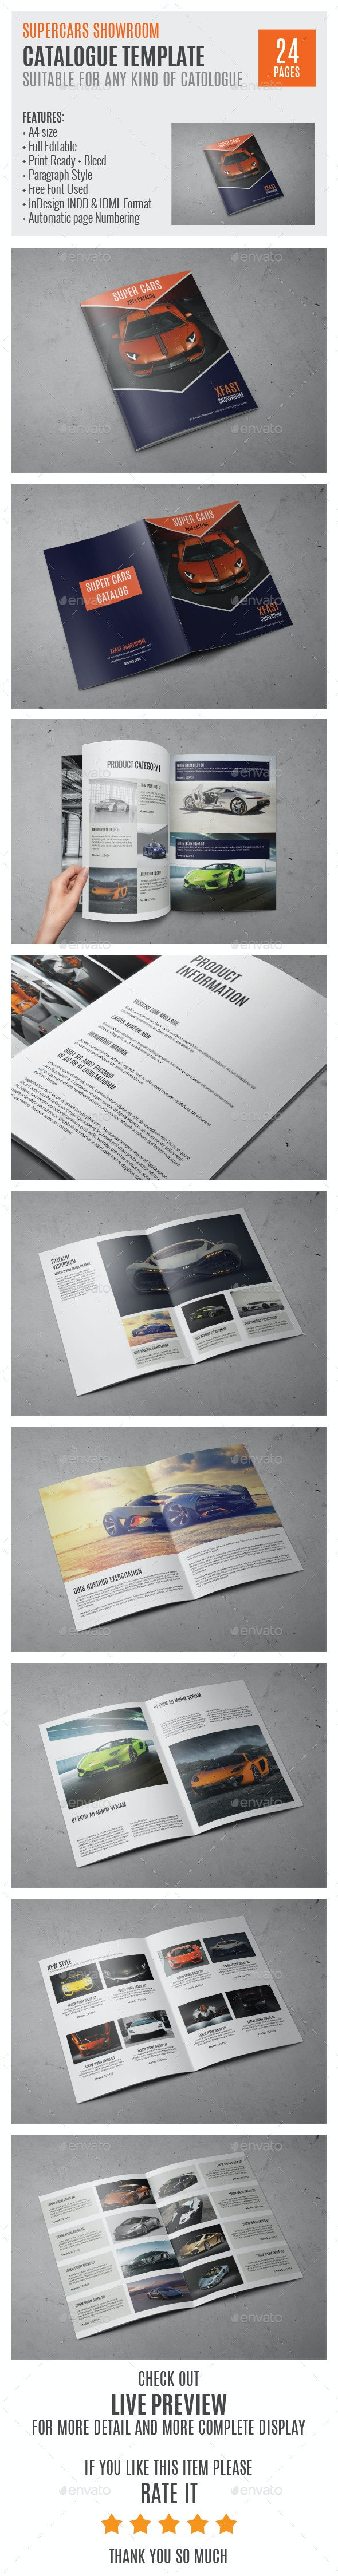 SuperCars A4 Catalog Template 0003 - Catalogs Brochures